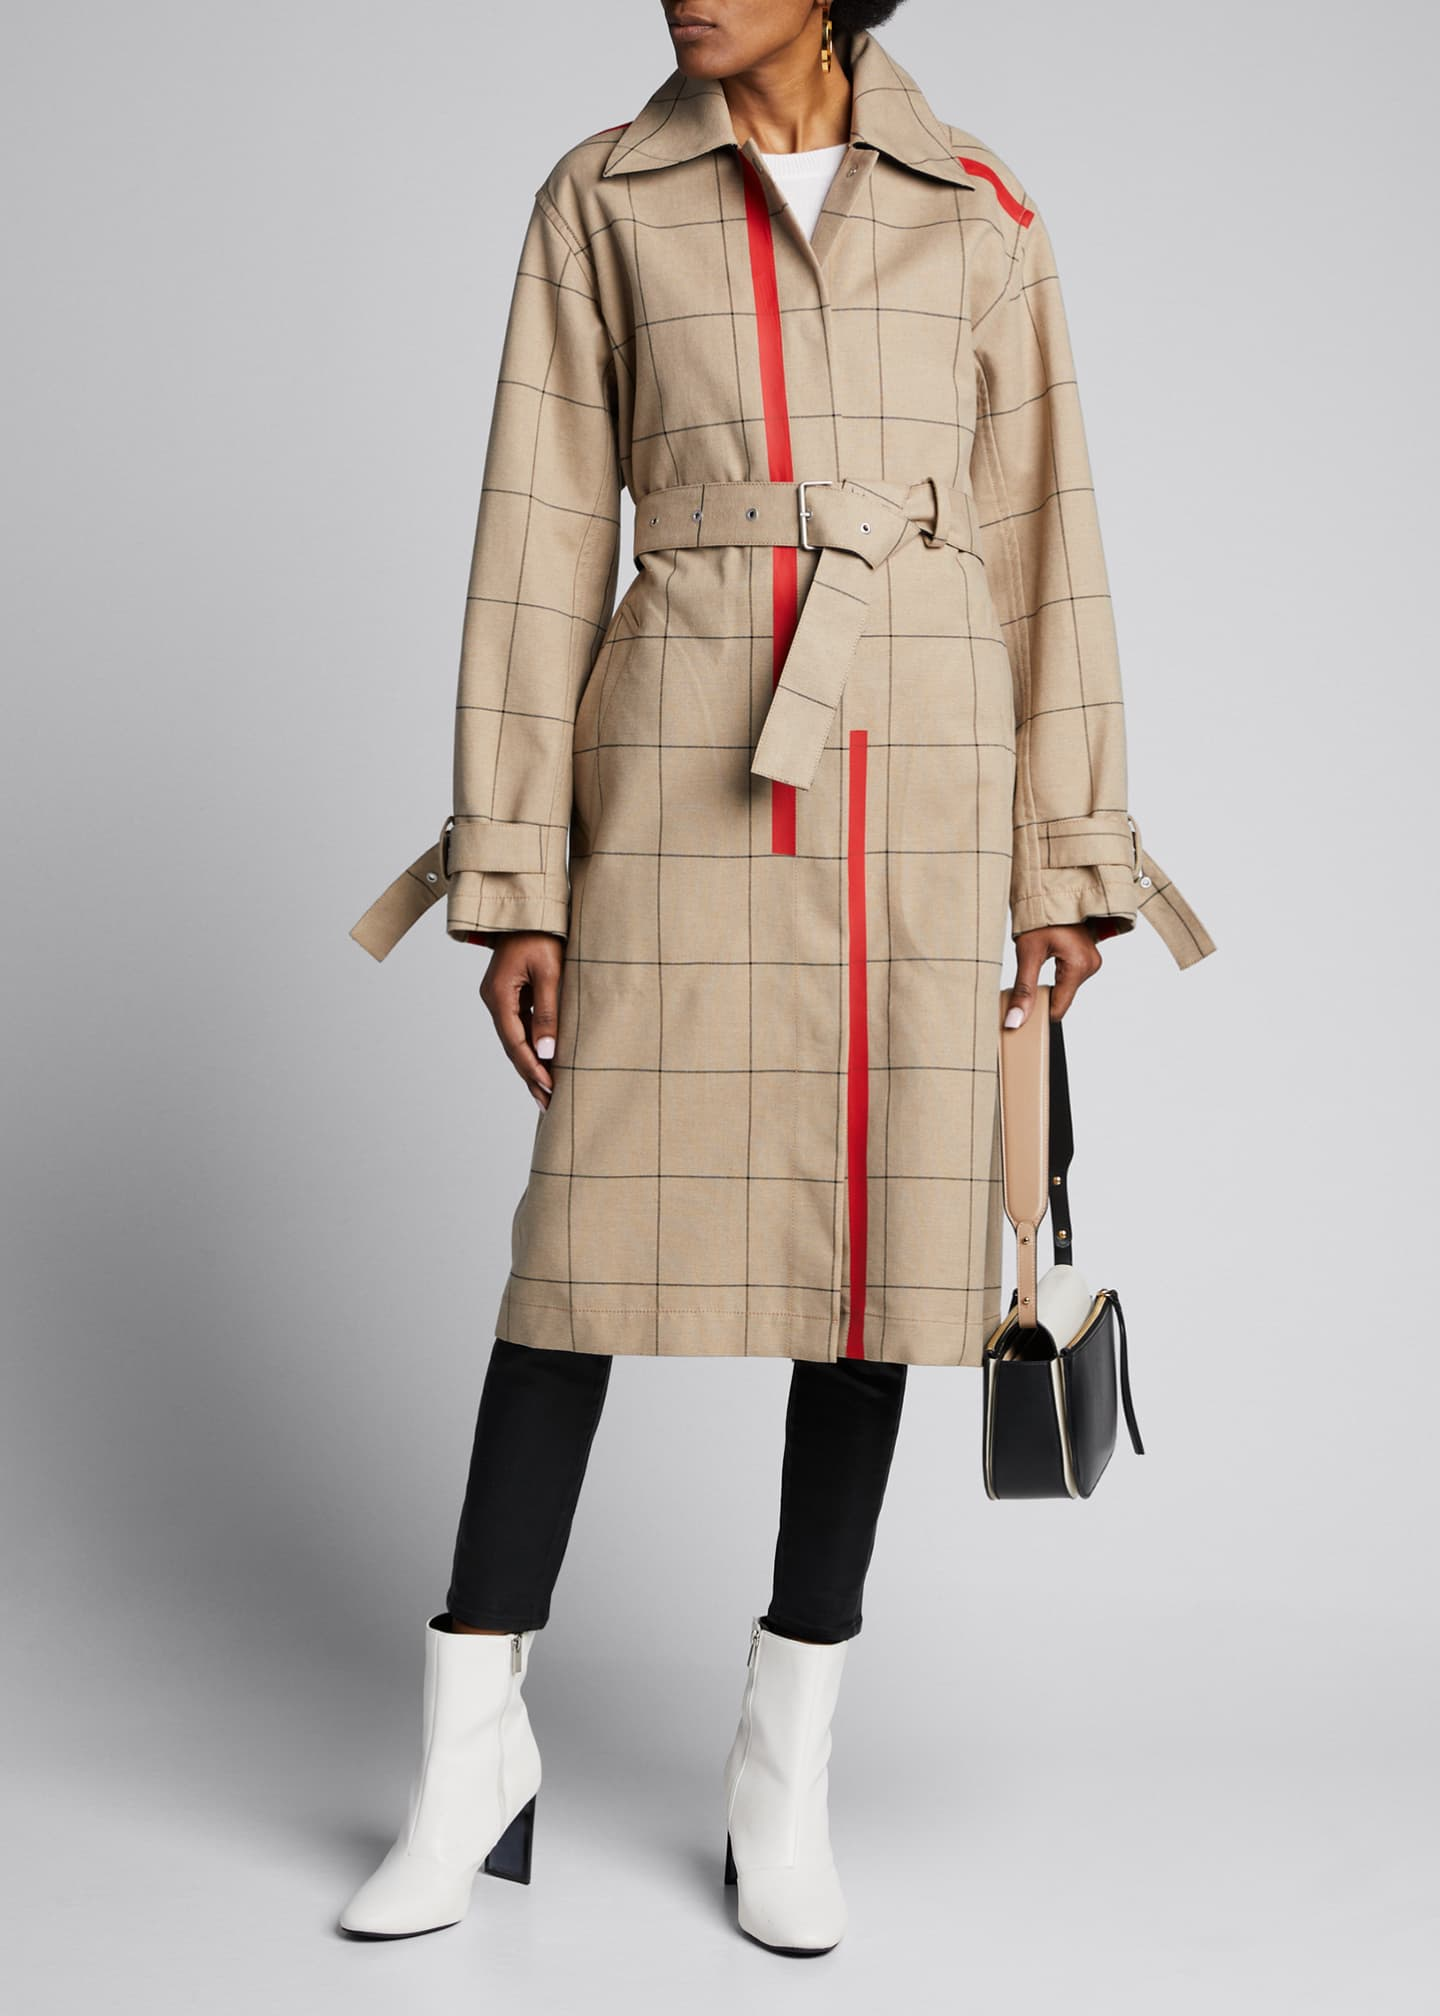 3.1 Phillip Lim Windowpane Trench Coat with Side